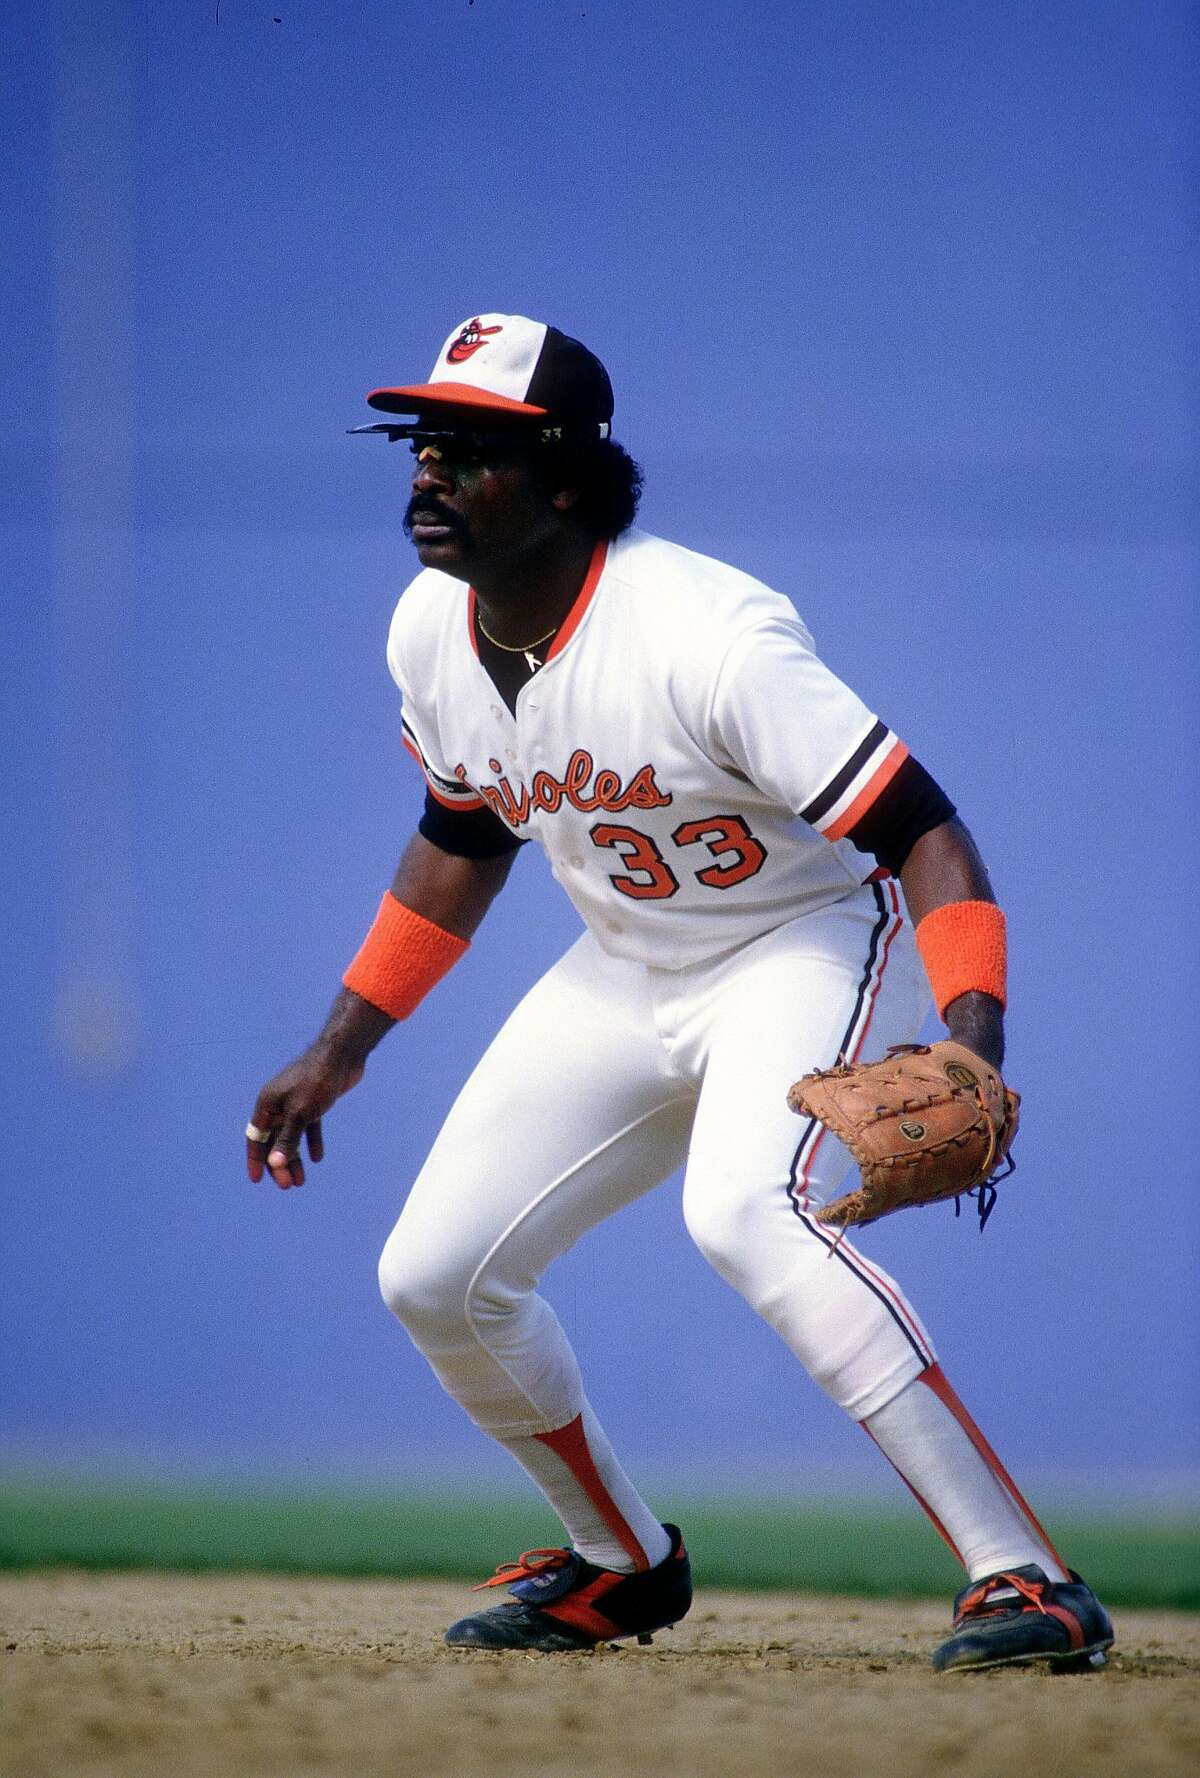 BALTIMORE, MD - CIRCA 1987: First baseman Eddie Murray #33 of the Baltimore Orioles in action during an Major League Baseball game circa 1987 at Memorial Stadium in Baltimore, Maryland. Murray played for the Orioles from 1977-88 and 1996.